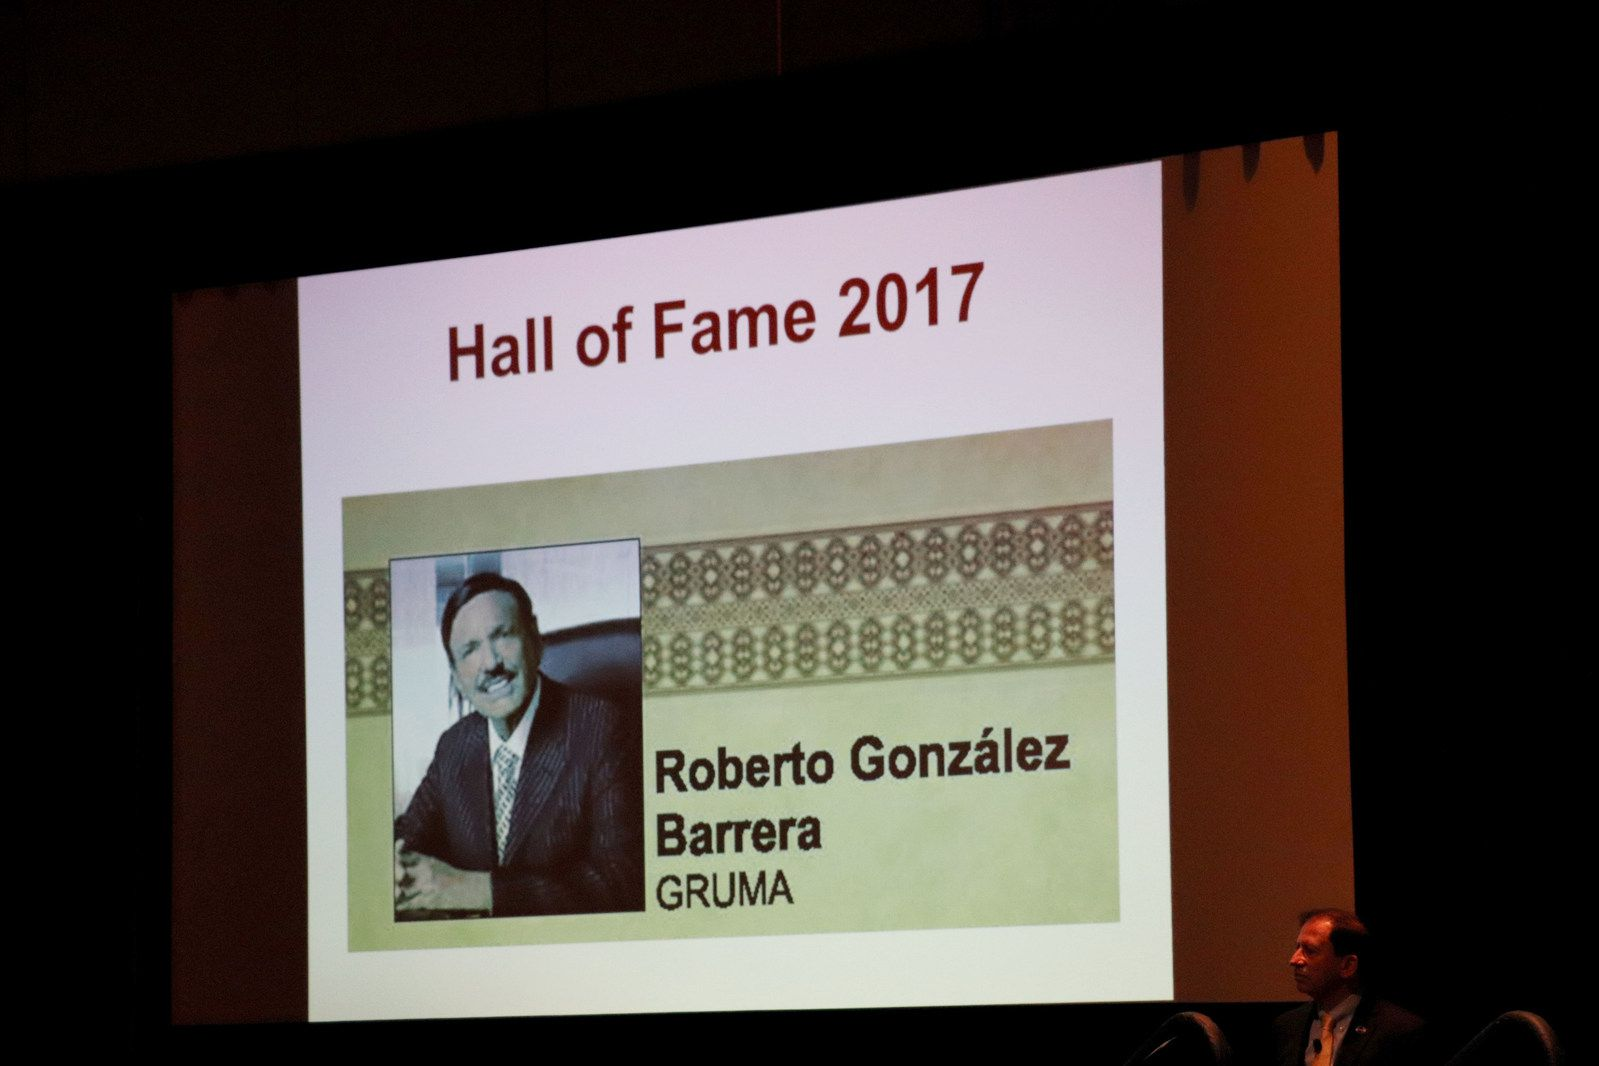 Roberto Gonzalez Barrera was inducted into the Tortilla Industry Association's Hall of Fame earlier this year.